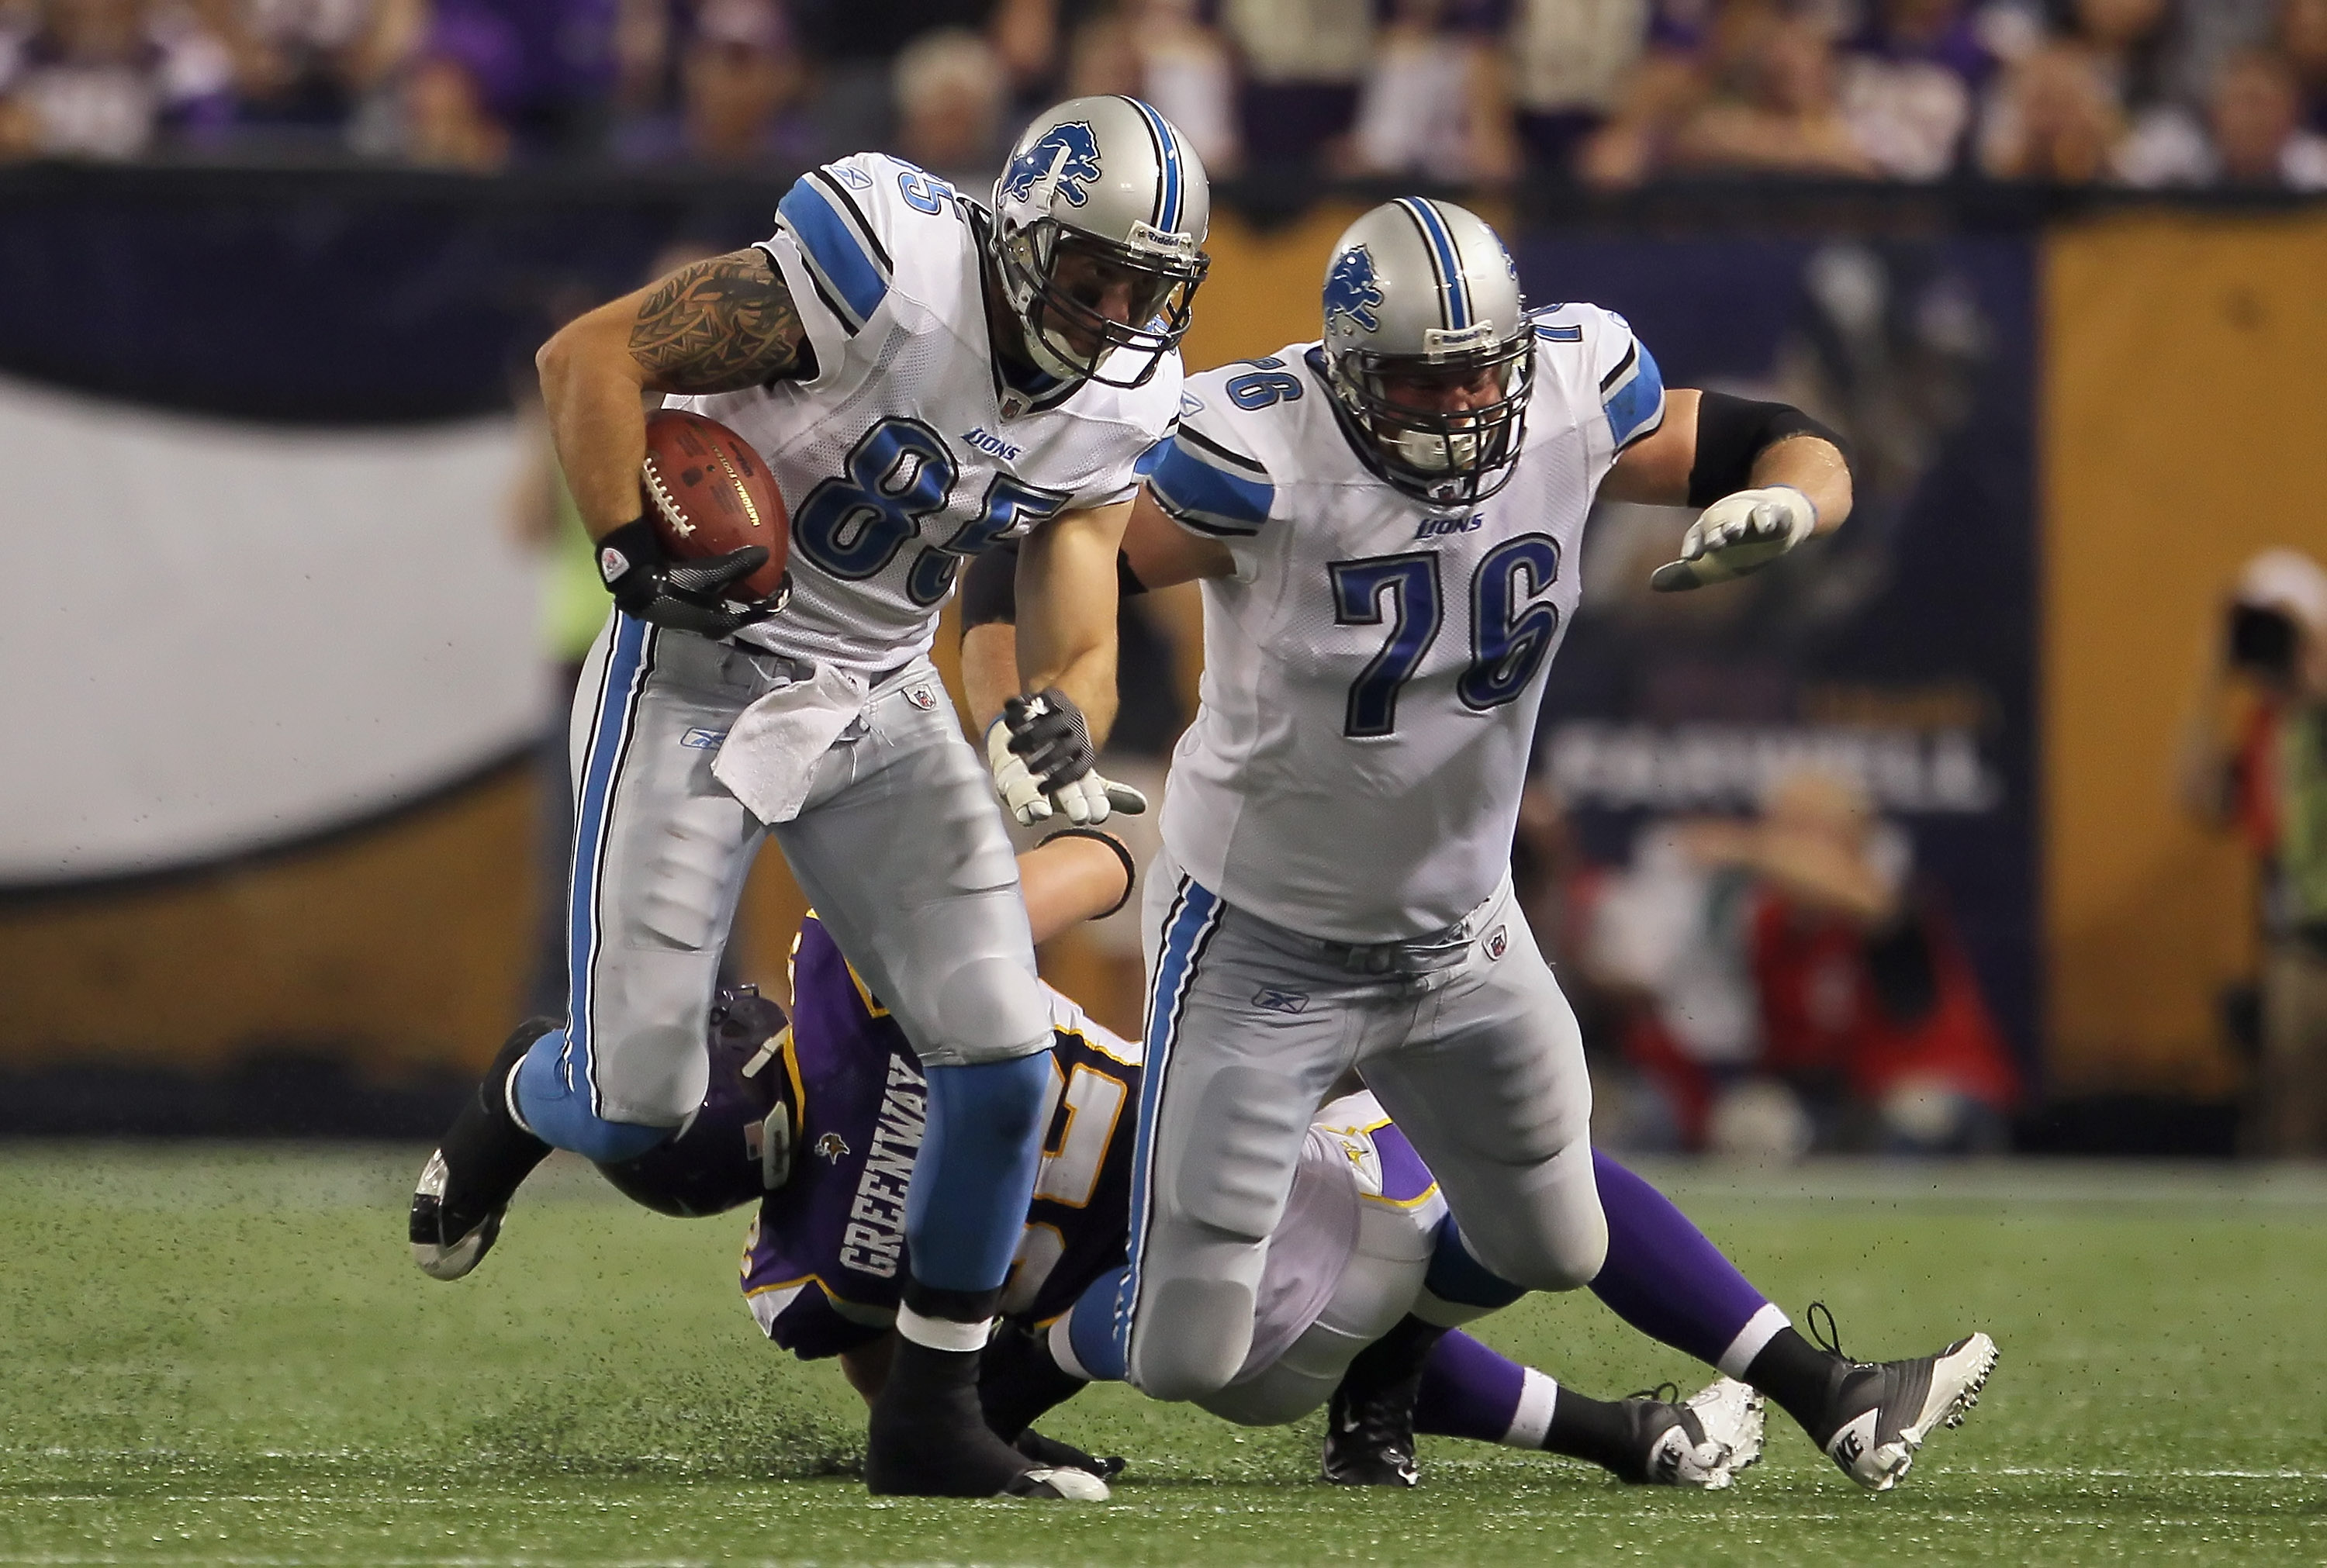 MINNEAPOLIS - SEPTEMBER 26:  Tight end Tony Scheffler #85 of the Detroit Lions carries the ball as teammate Jeff Backus #76 prepares to block against the Minnesota Vikings at Mall of America Field on September 26, 2010 in Minneapolis, Minnesota. The Vikin